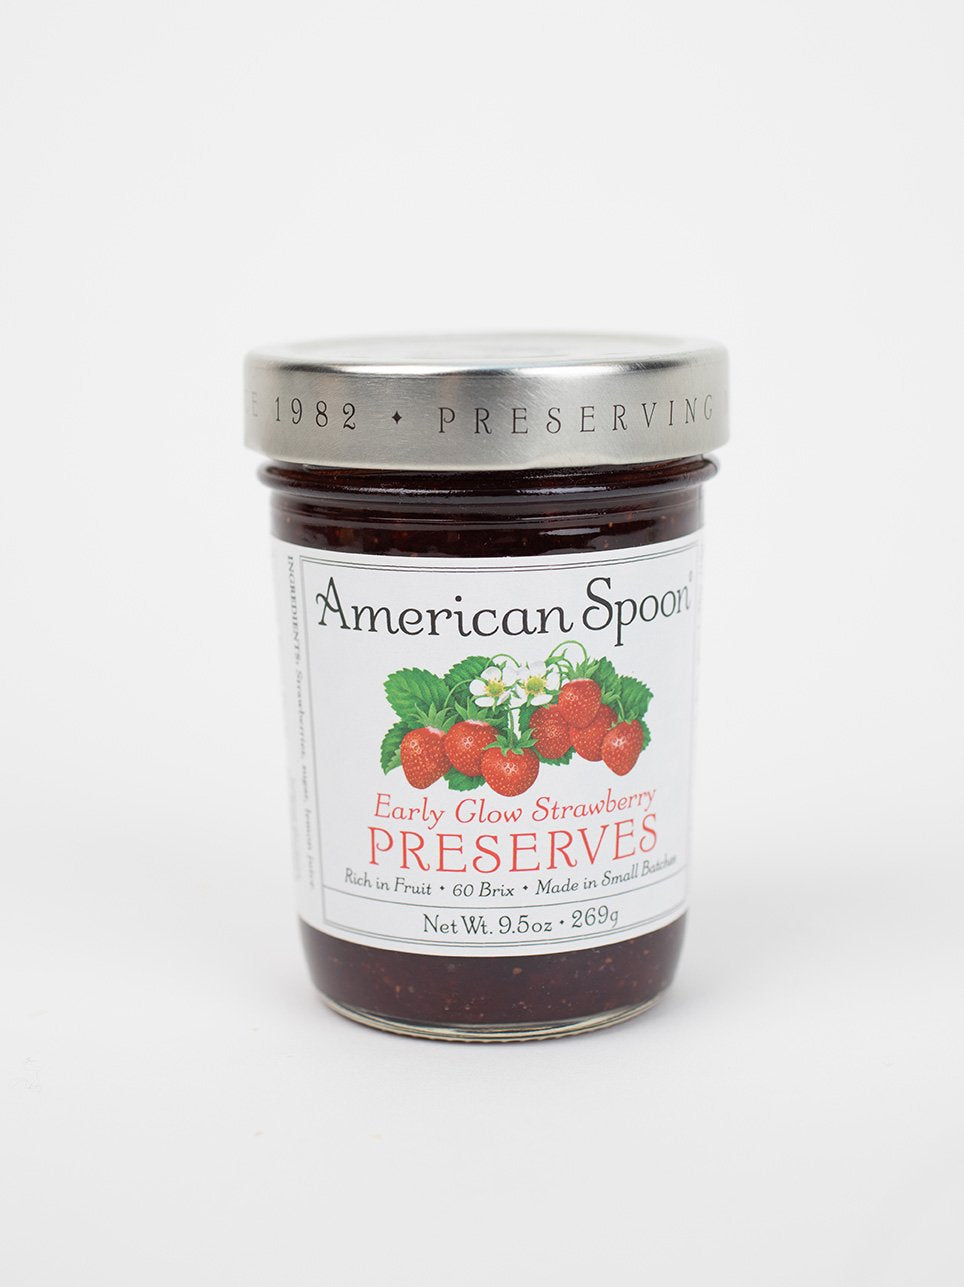 American Spoon preserves